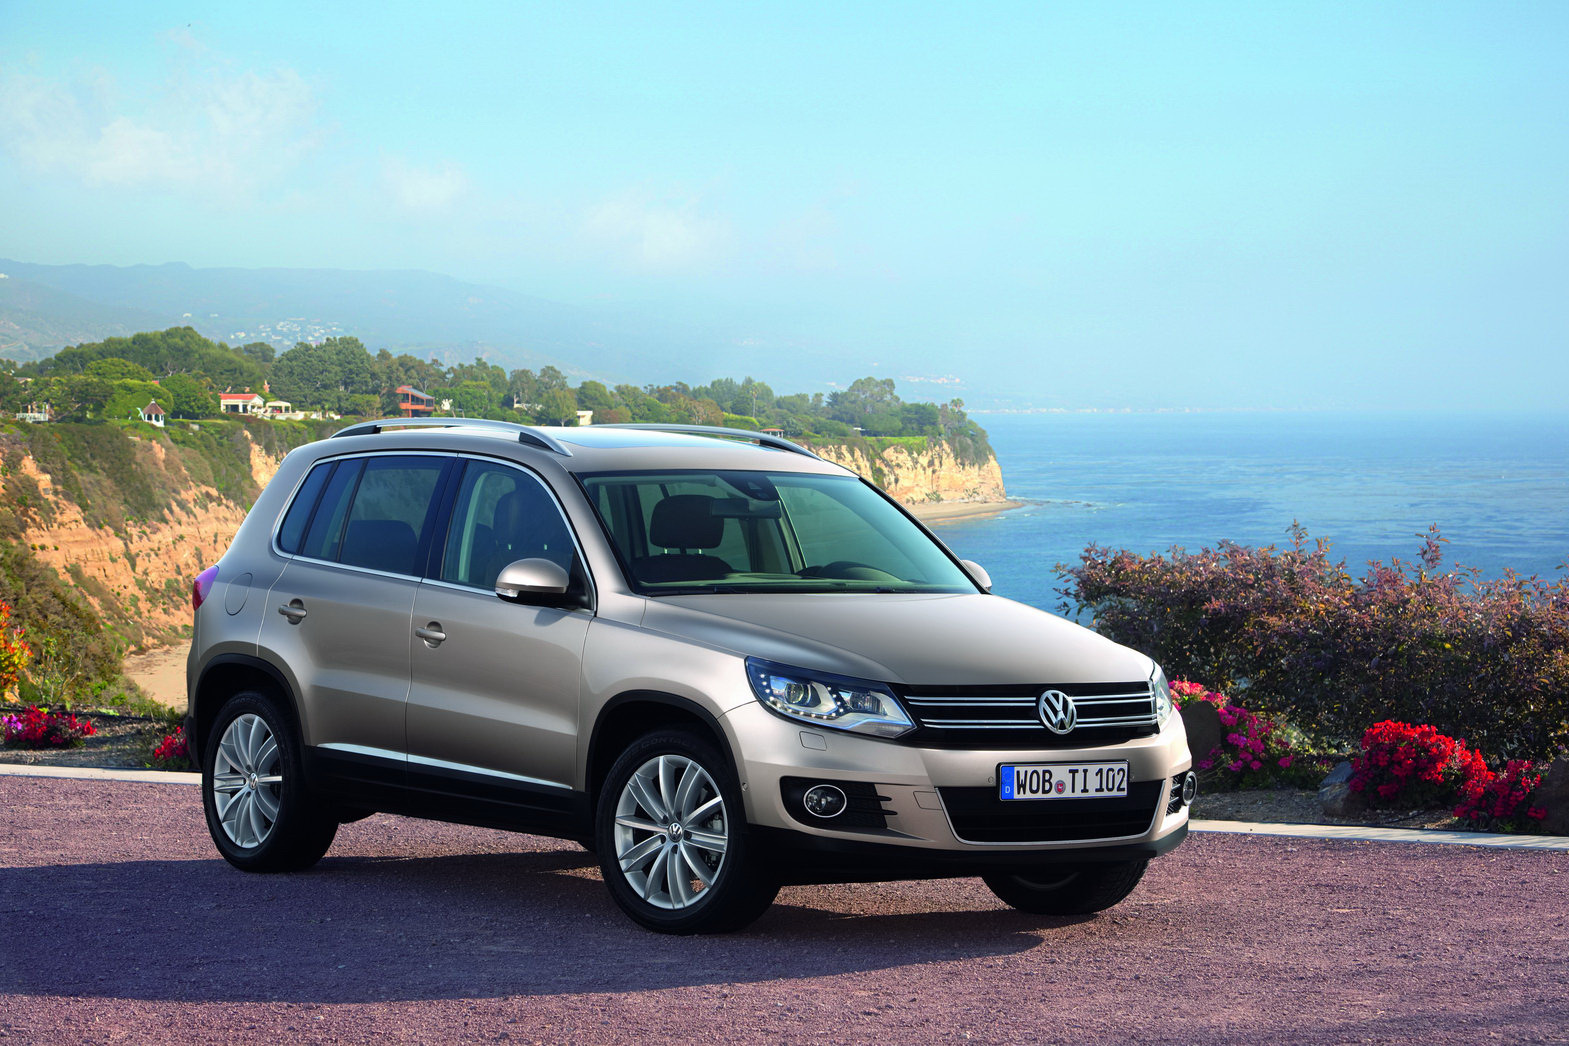 volkswagen will release photos of 2012 tiguan suv face lift. Black Bedroom Furniture Sets. Home Design Ideas